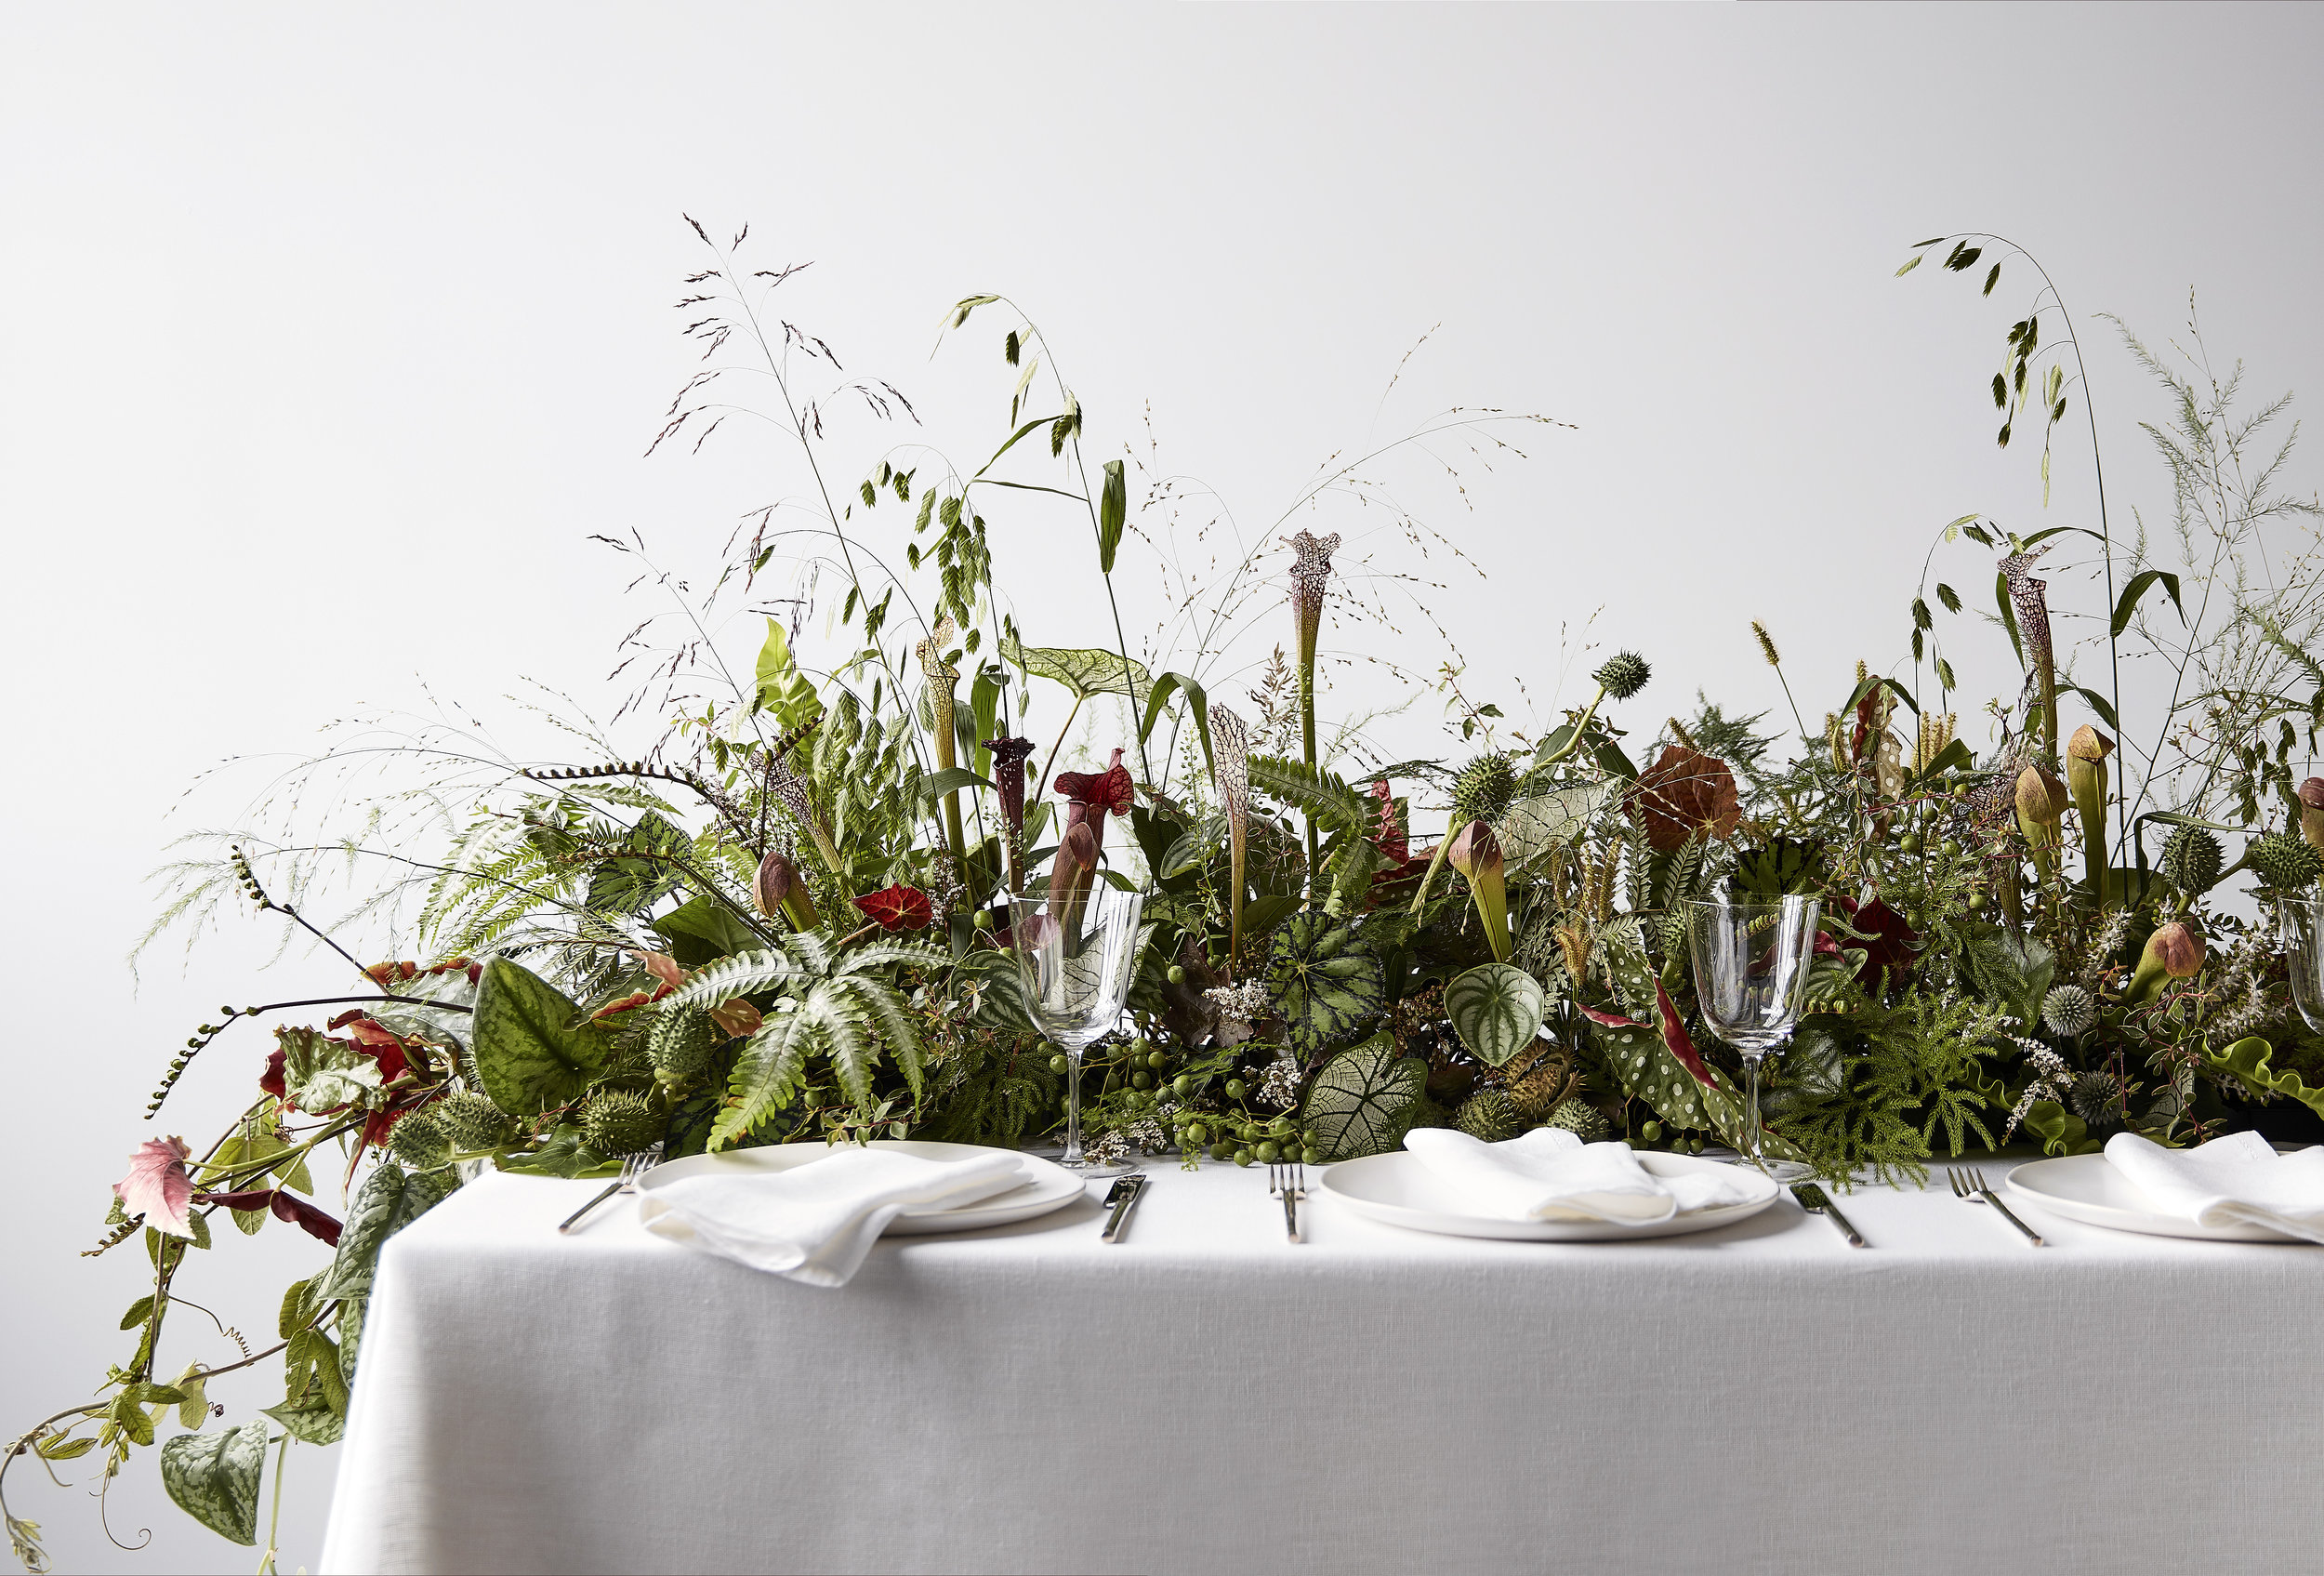 Jenya Flowers -we cannot get over this real life table top flower field. we would kill to dine in a setting like this! jenya is so in touch with nature and its reflected in his creations